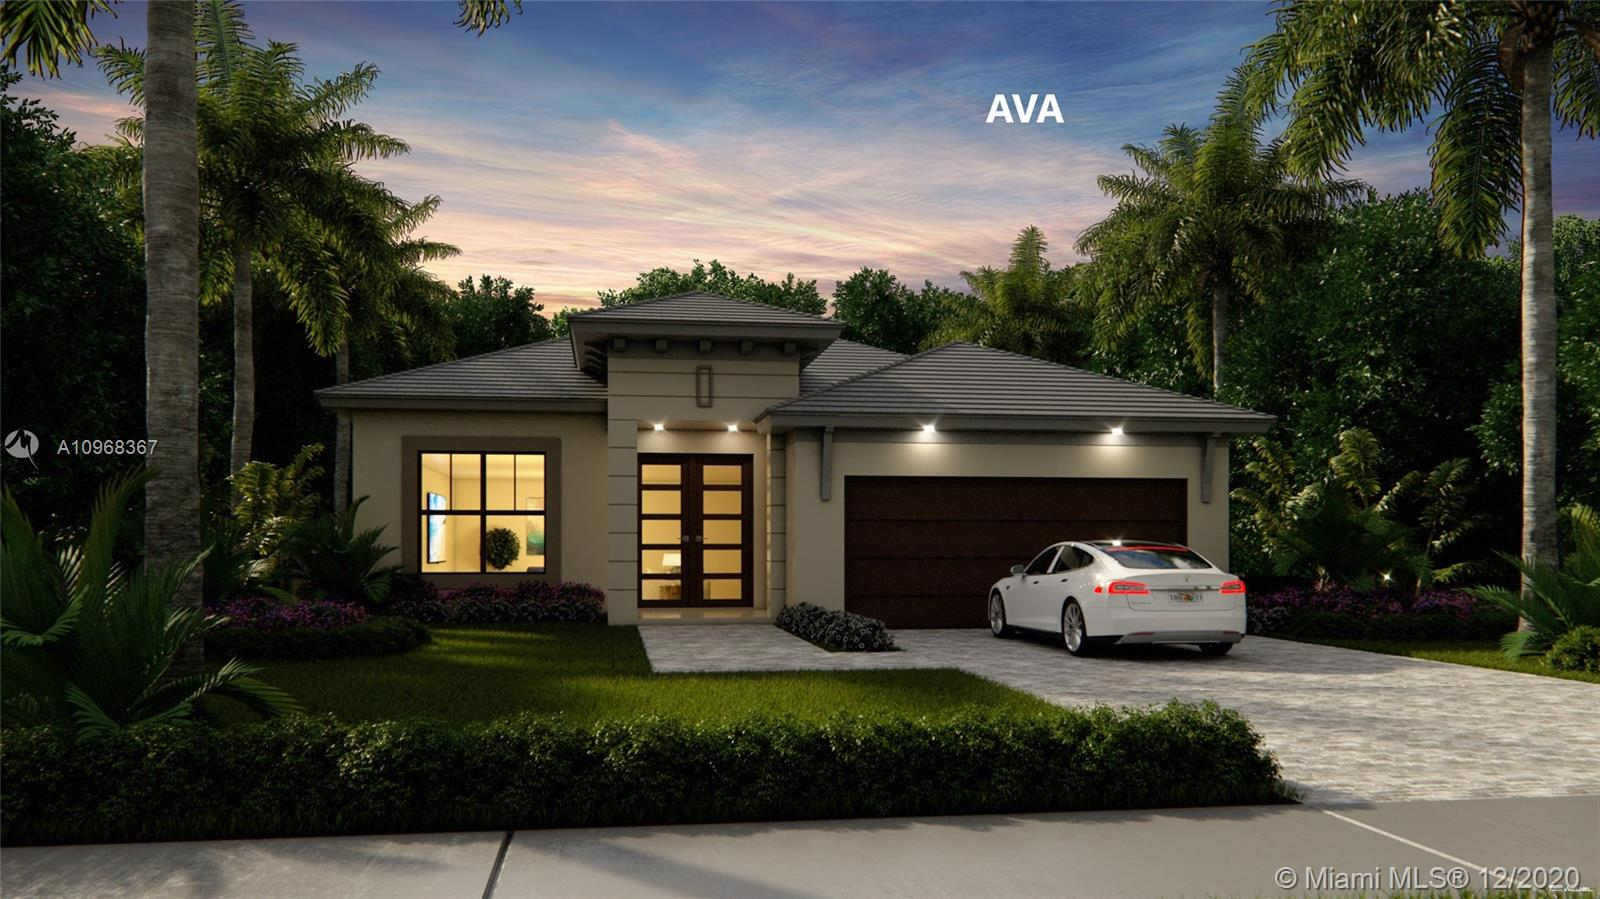 29137 SW 165 Ave Property Photo - Homestead, FL real estate listing